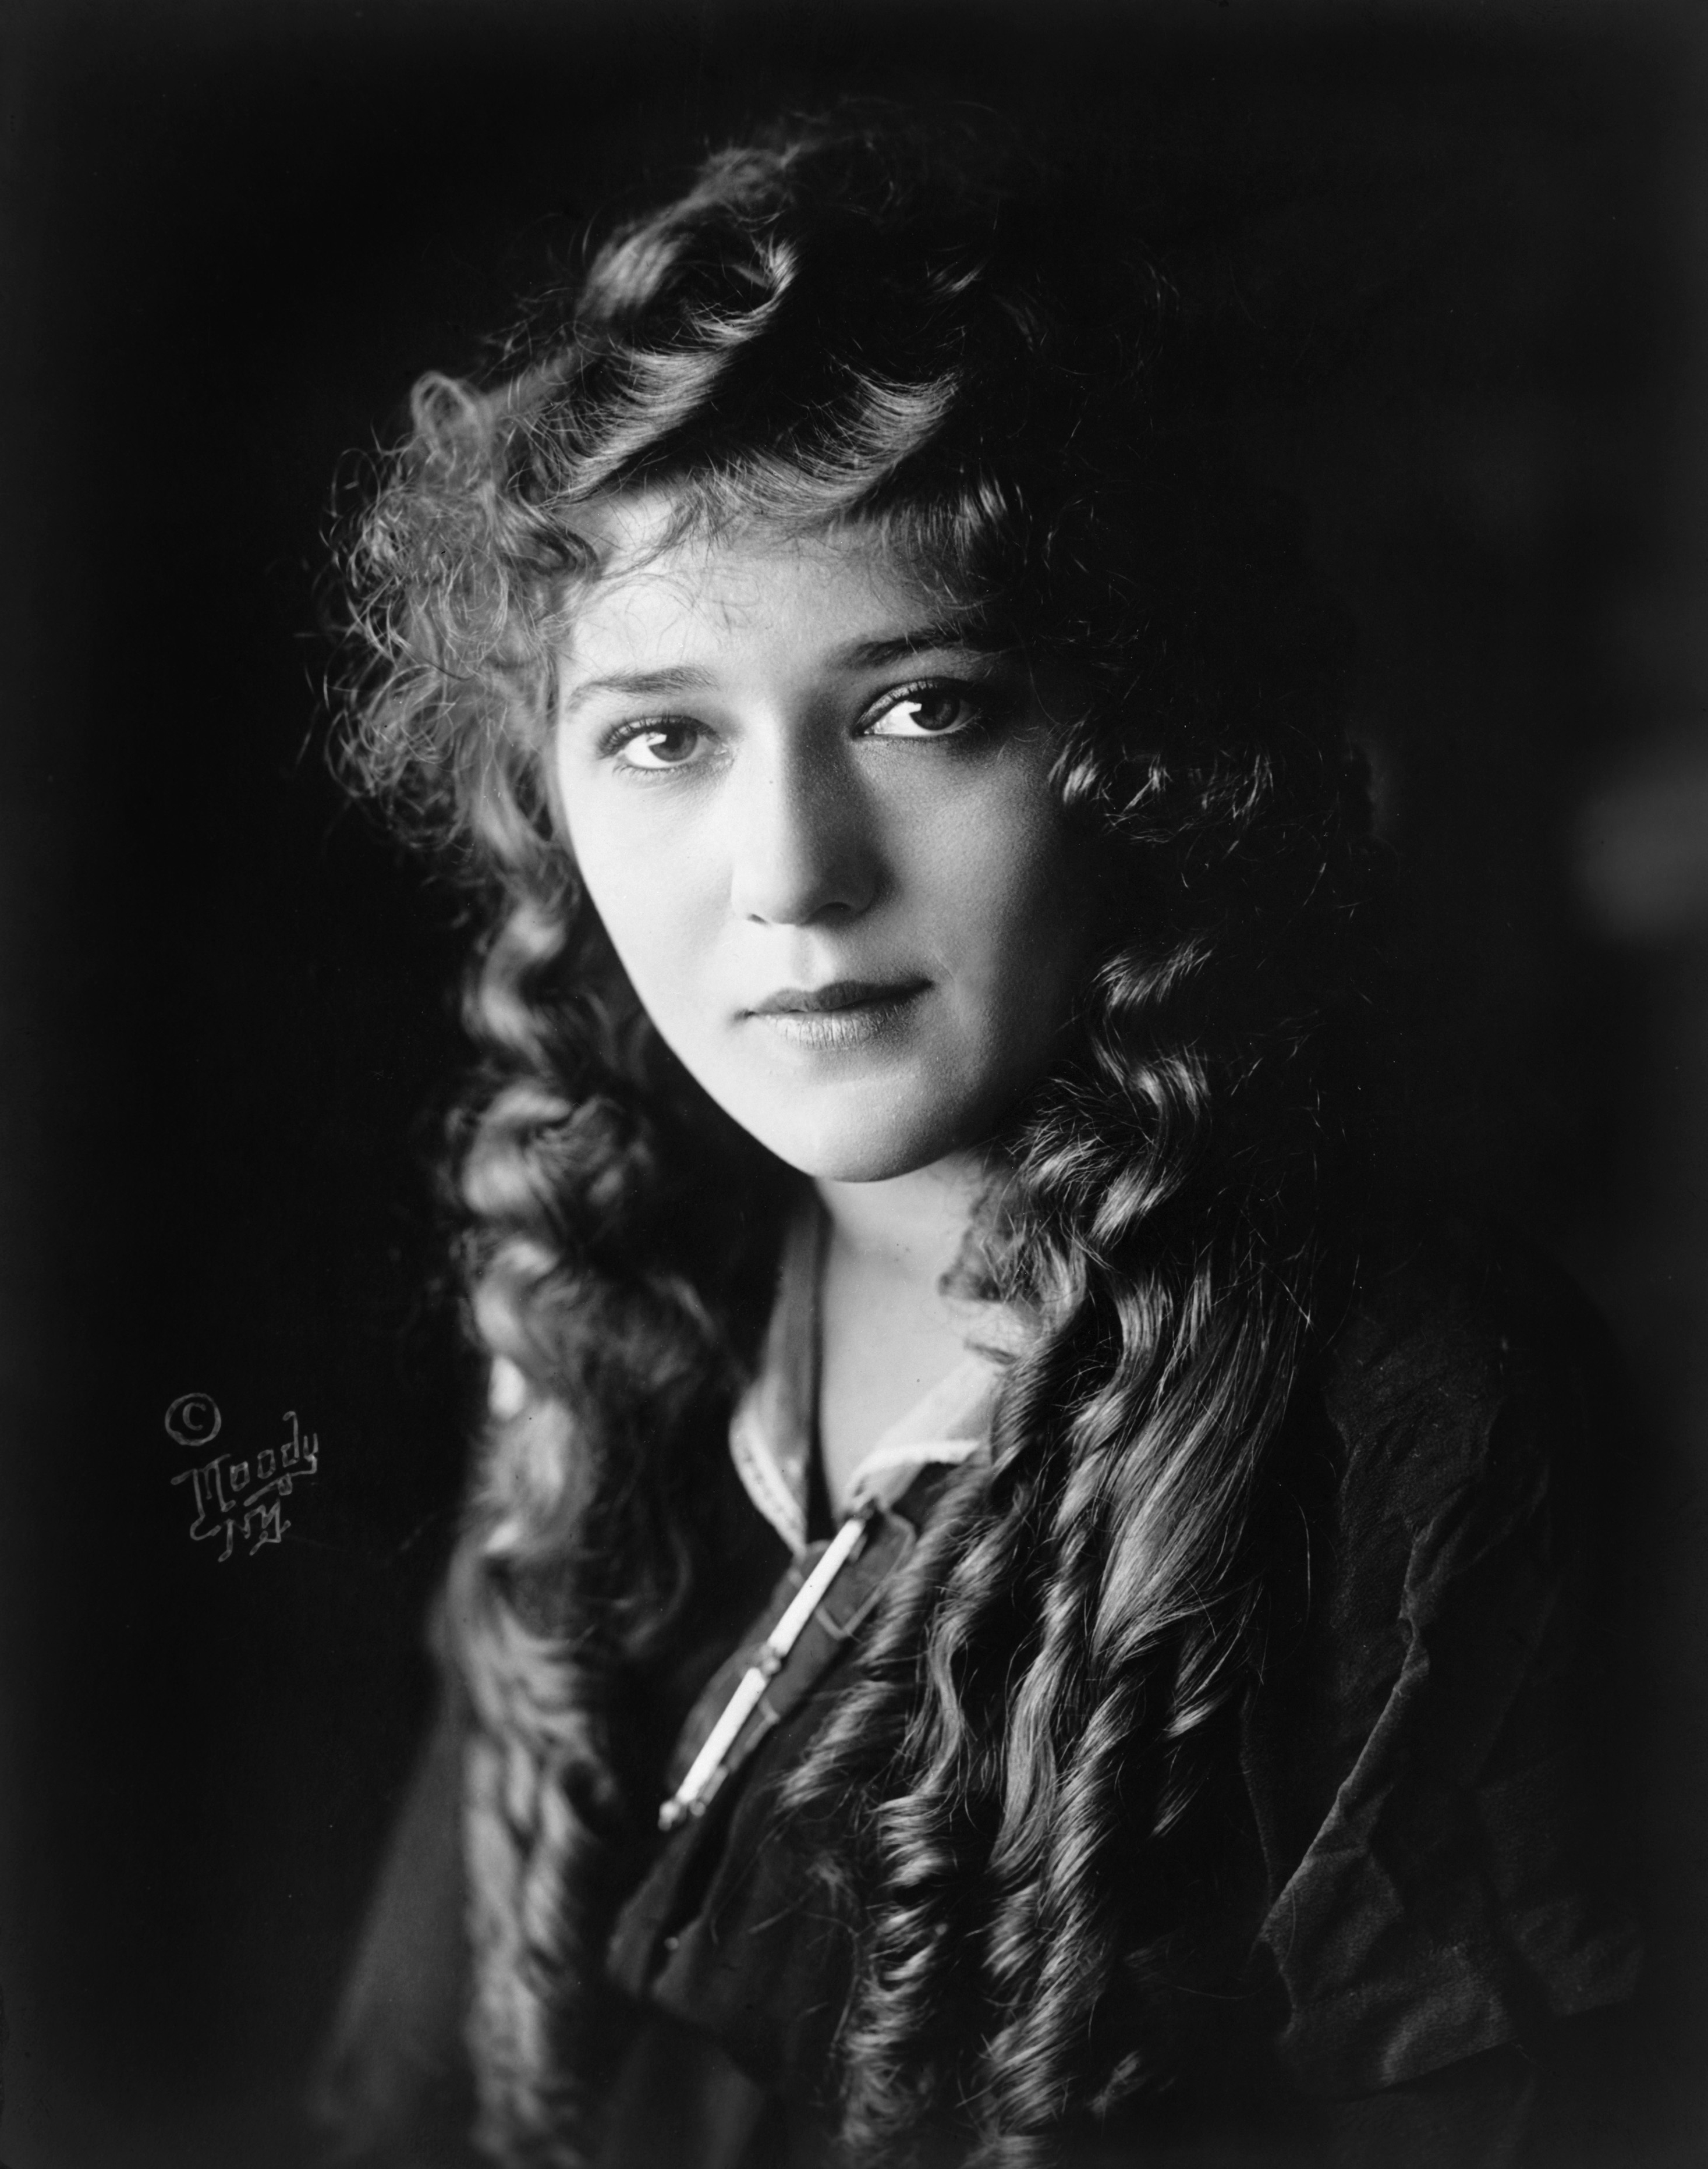 Studio photo of Mary Pickford c. 1914